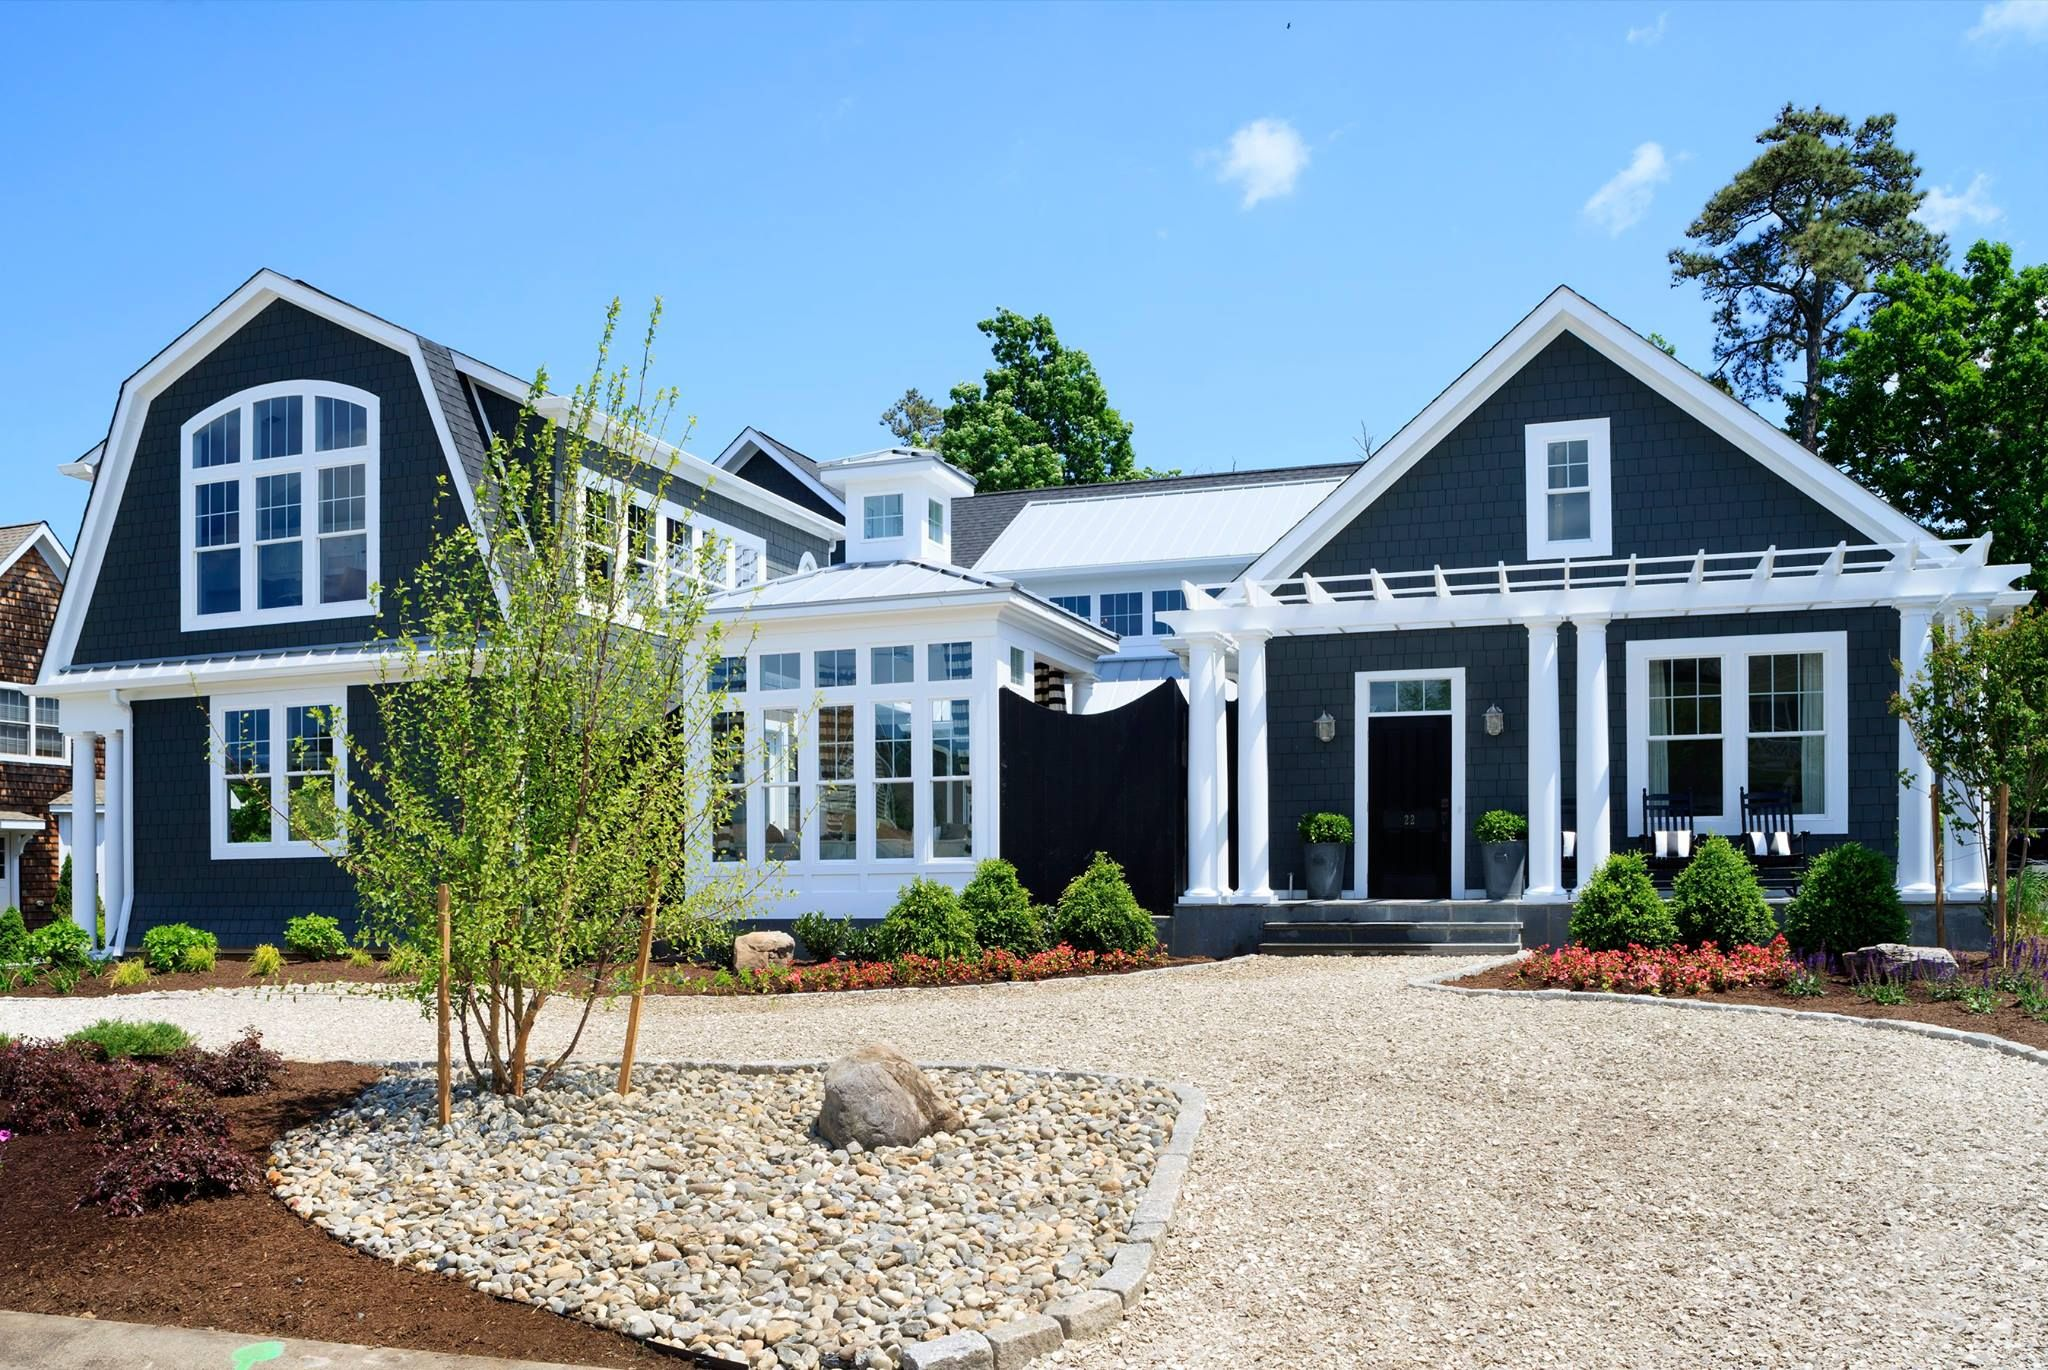 Petrone Beach House With Oyster Shell Driveway Rehoboth Beach Pad Pinterest Oyster Shells